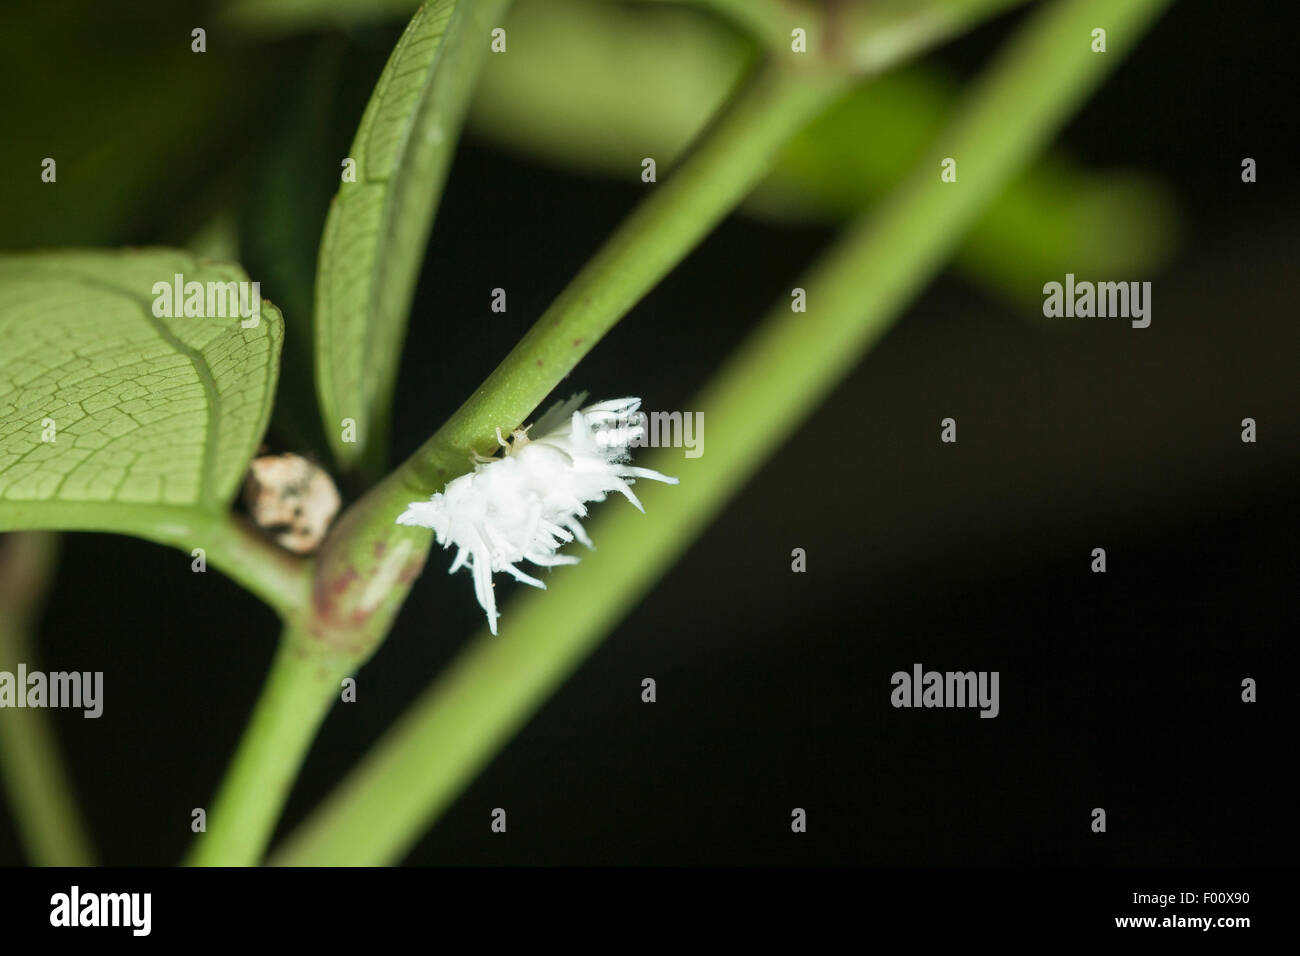 A mealybug destroyer larva.  These insect larvae mimic the appearance of their prey. - Stock Image